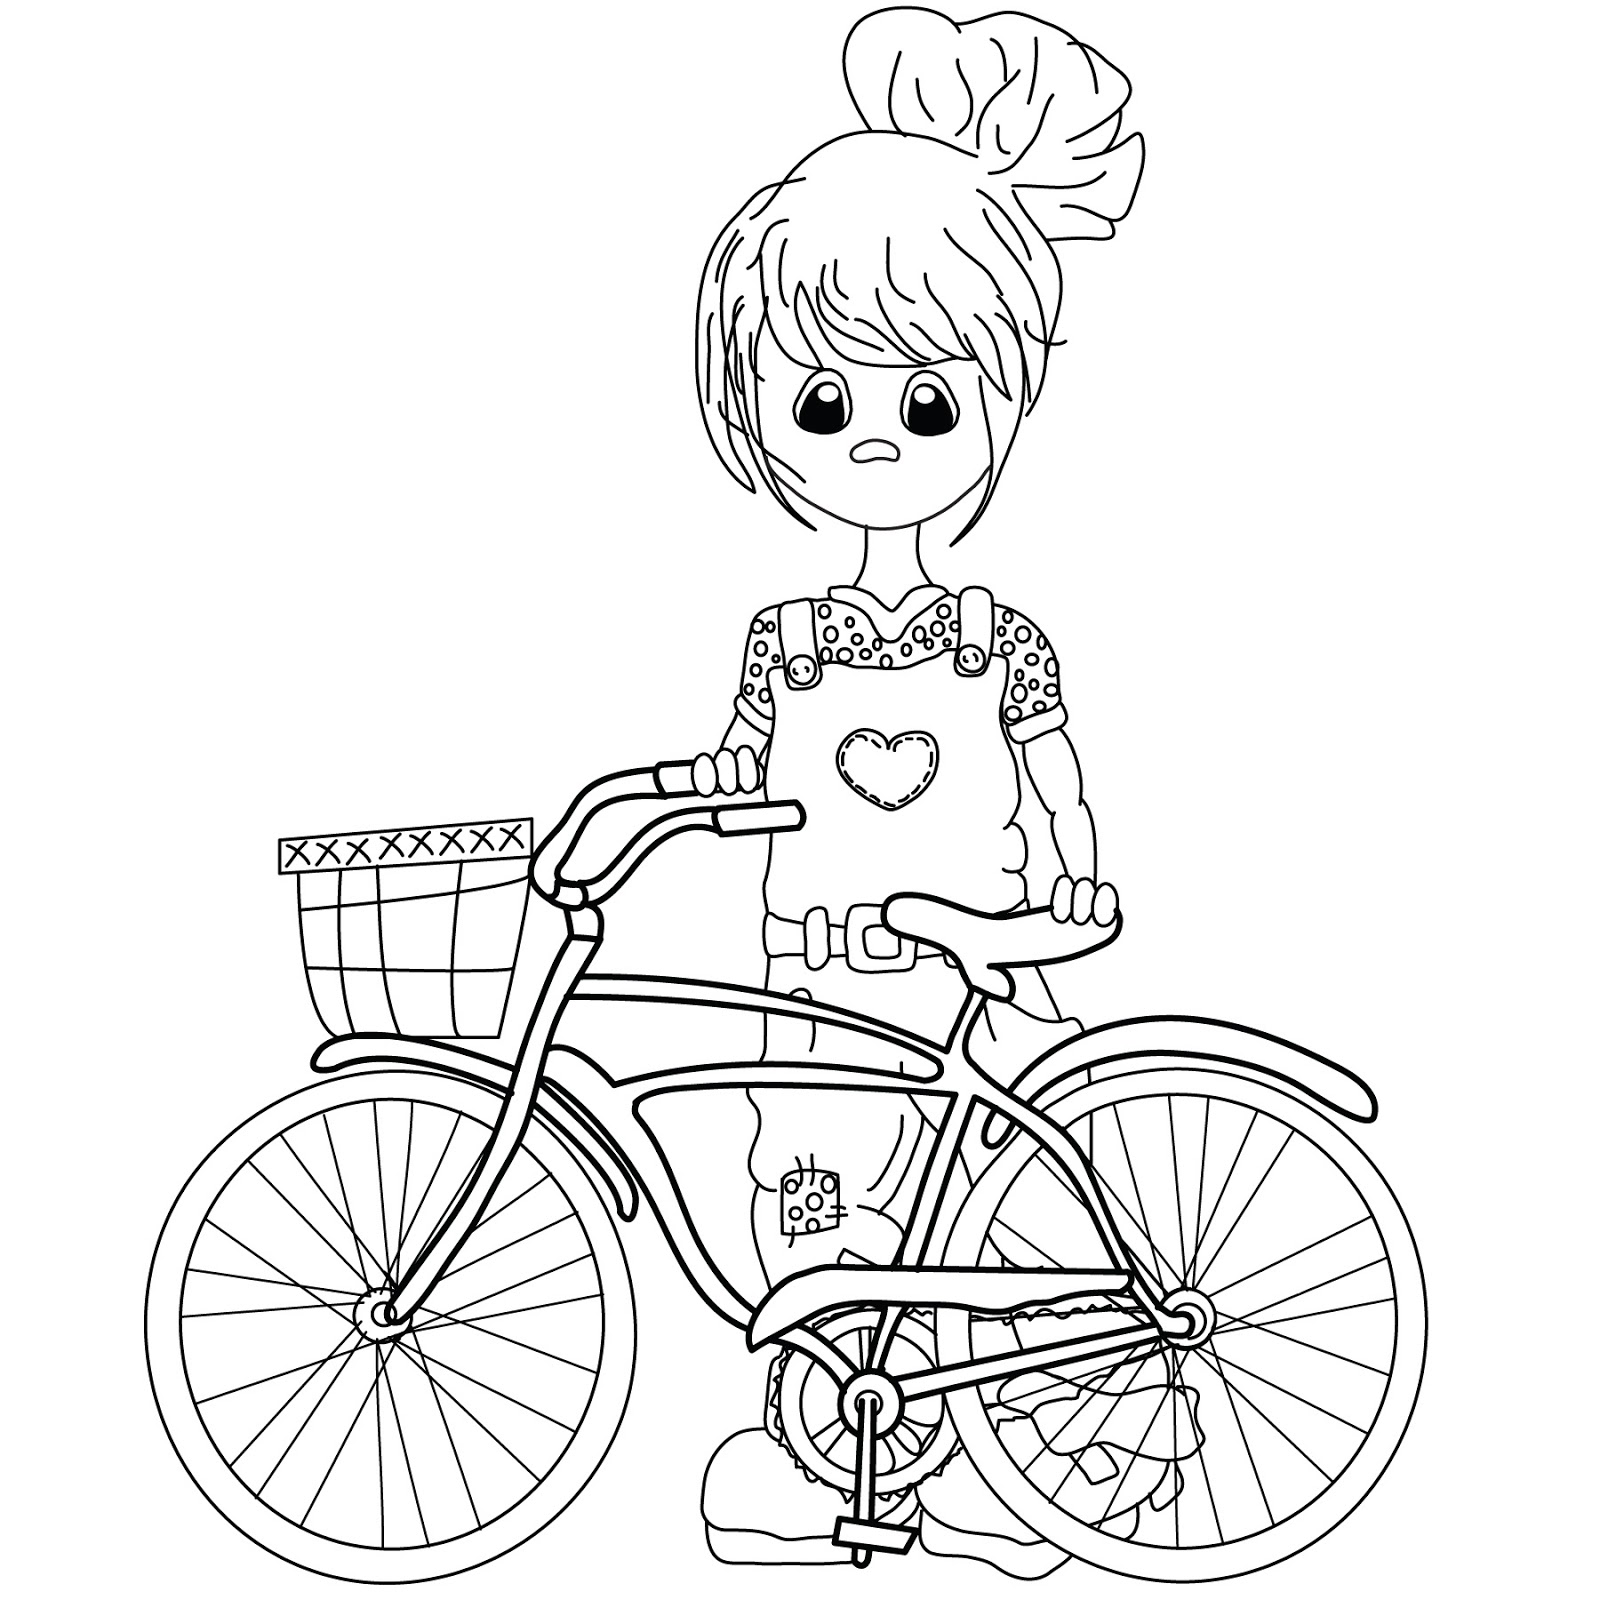 How To Draw A Bike For Kids